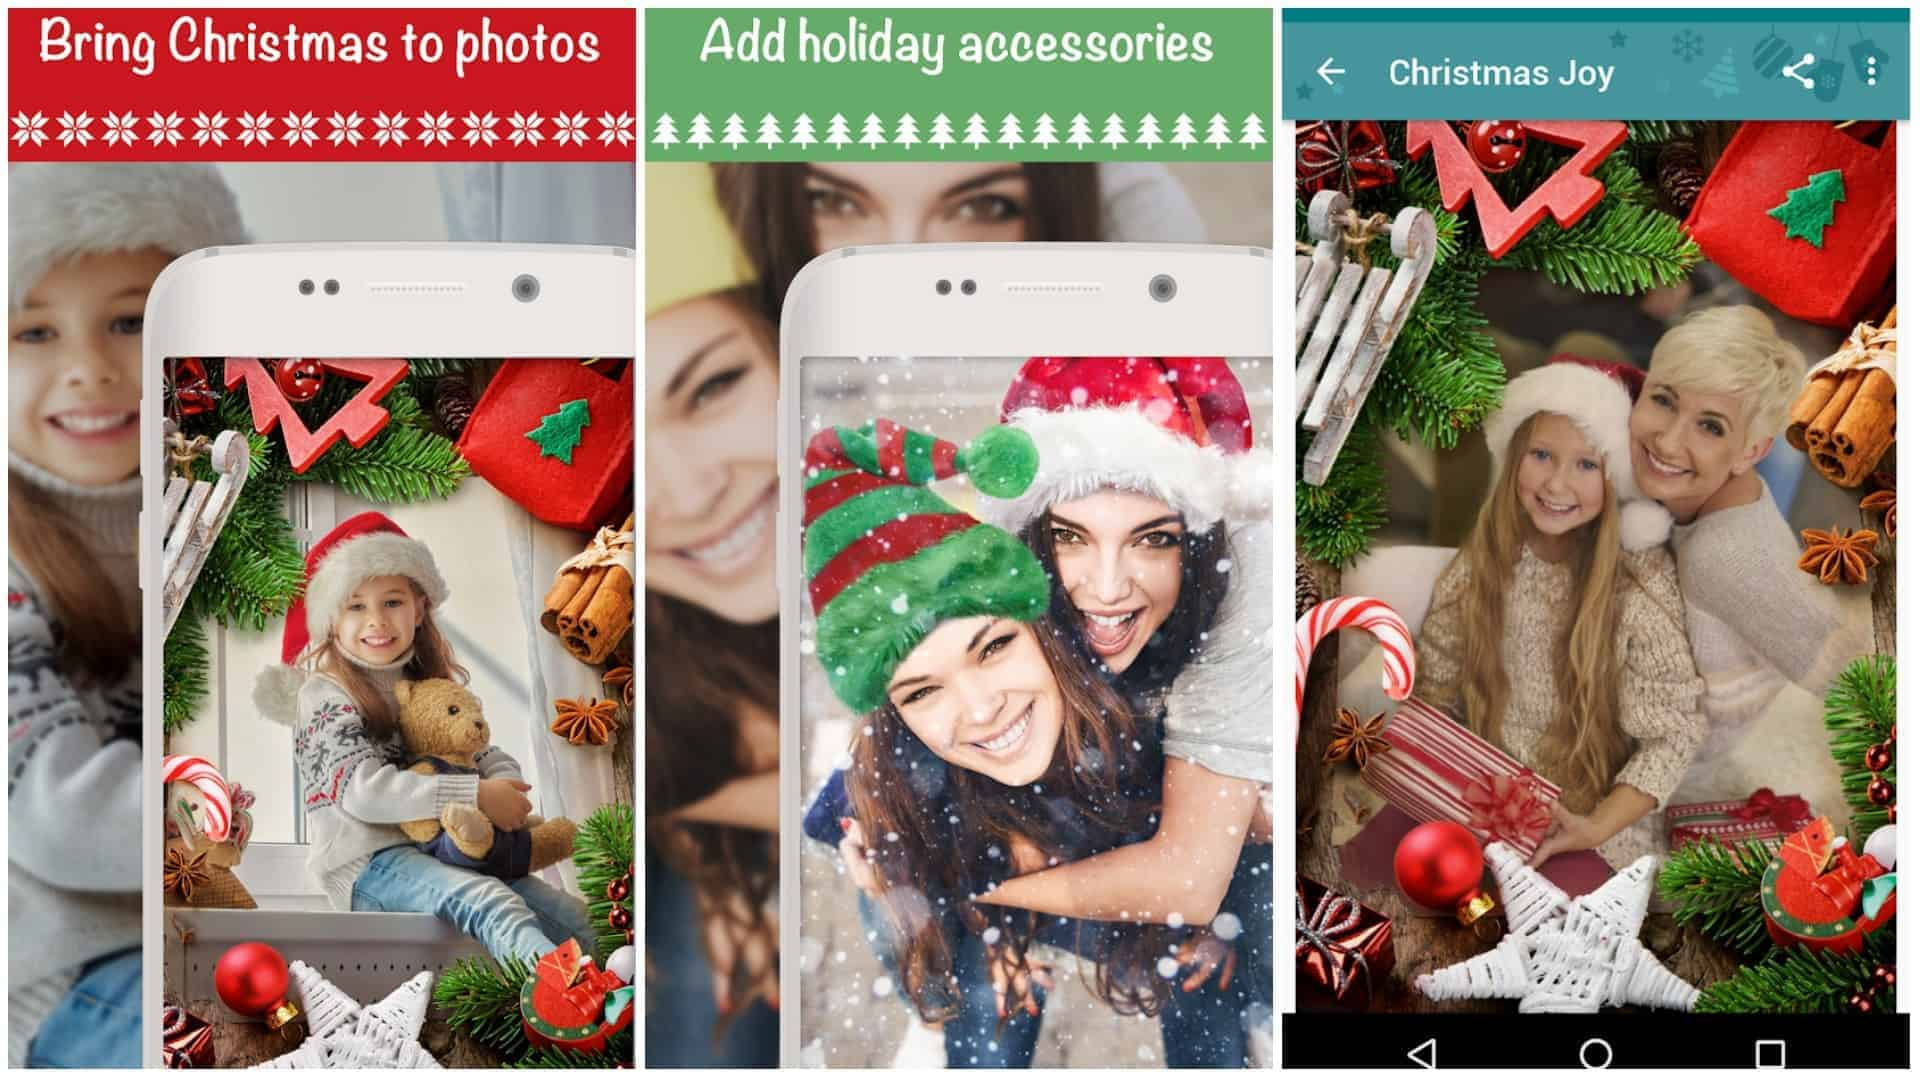 Christmas Photo Frames Effects Cards Art app image December 2019